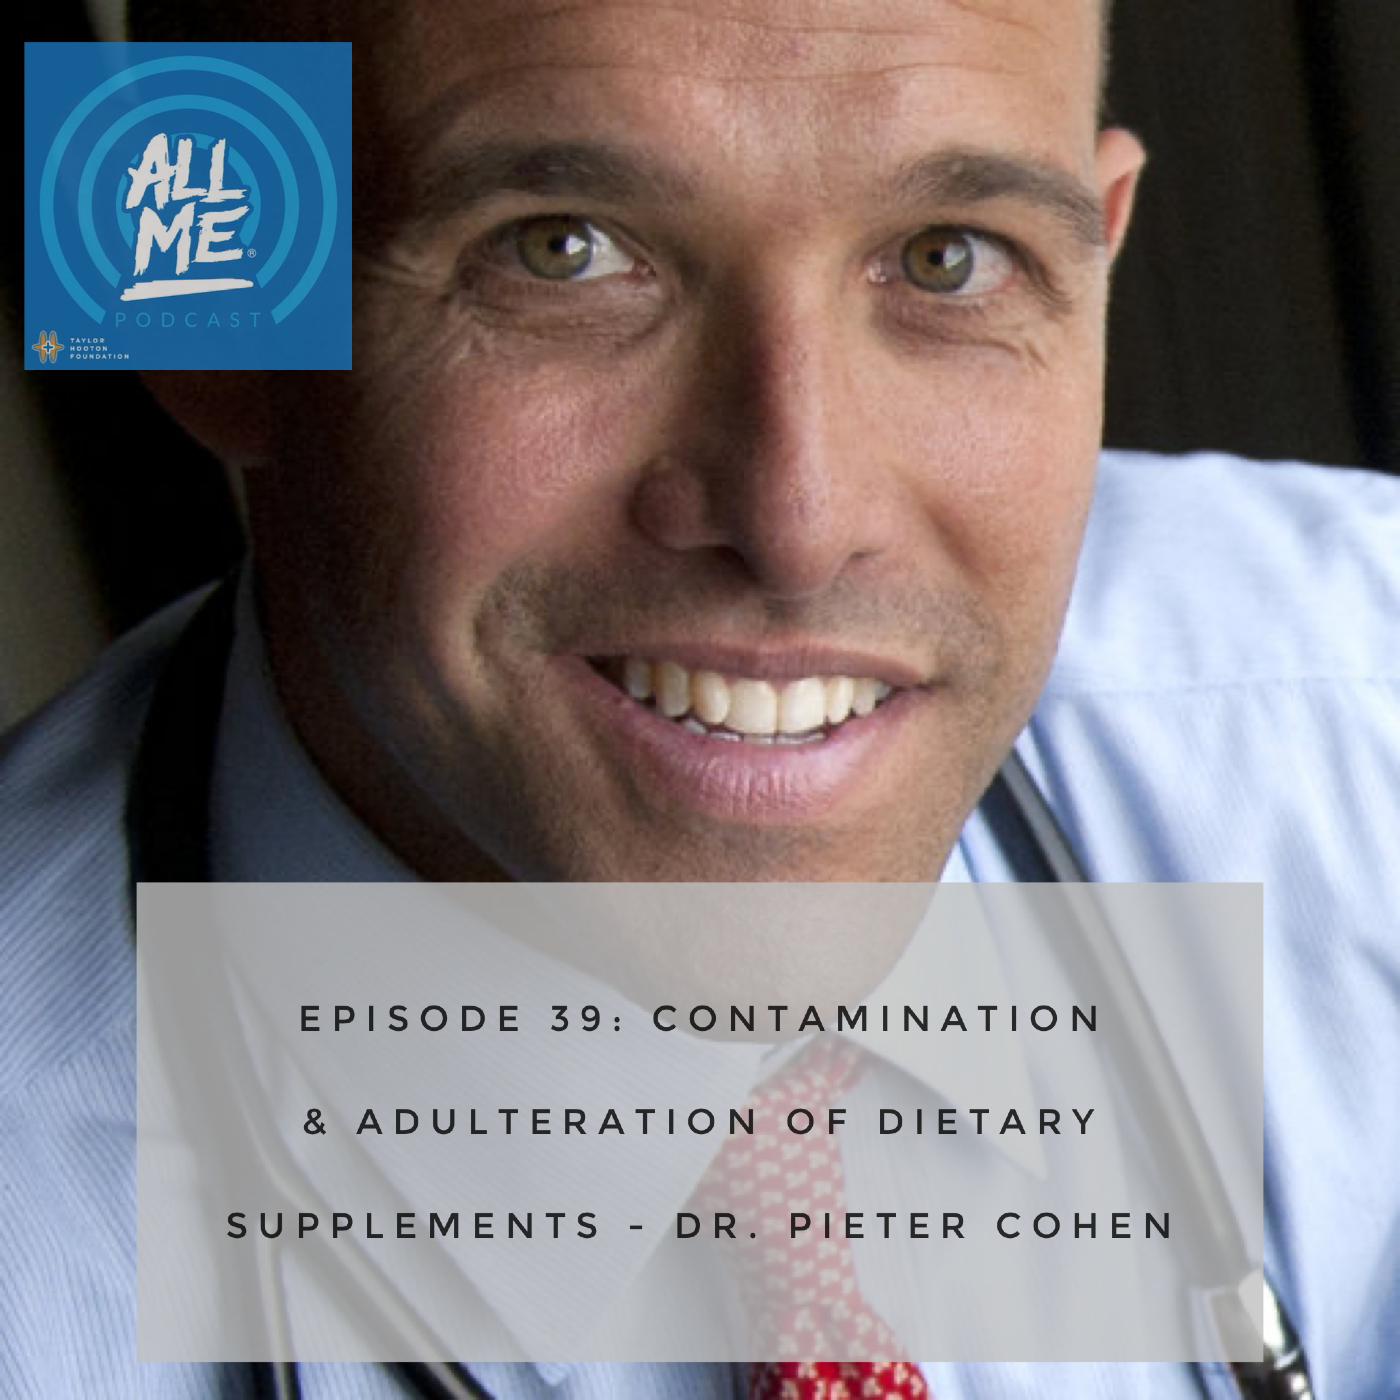 Episode 39: Contamination & Adulteration of Dietary Supplements - Dr. Pieter Cohen